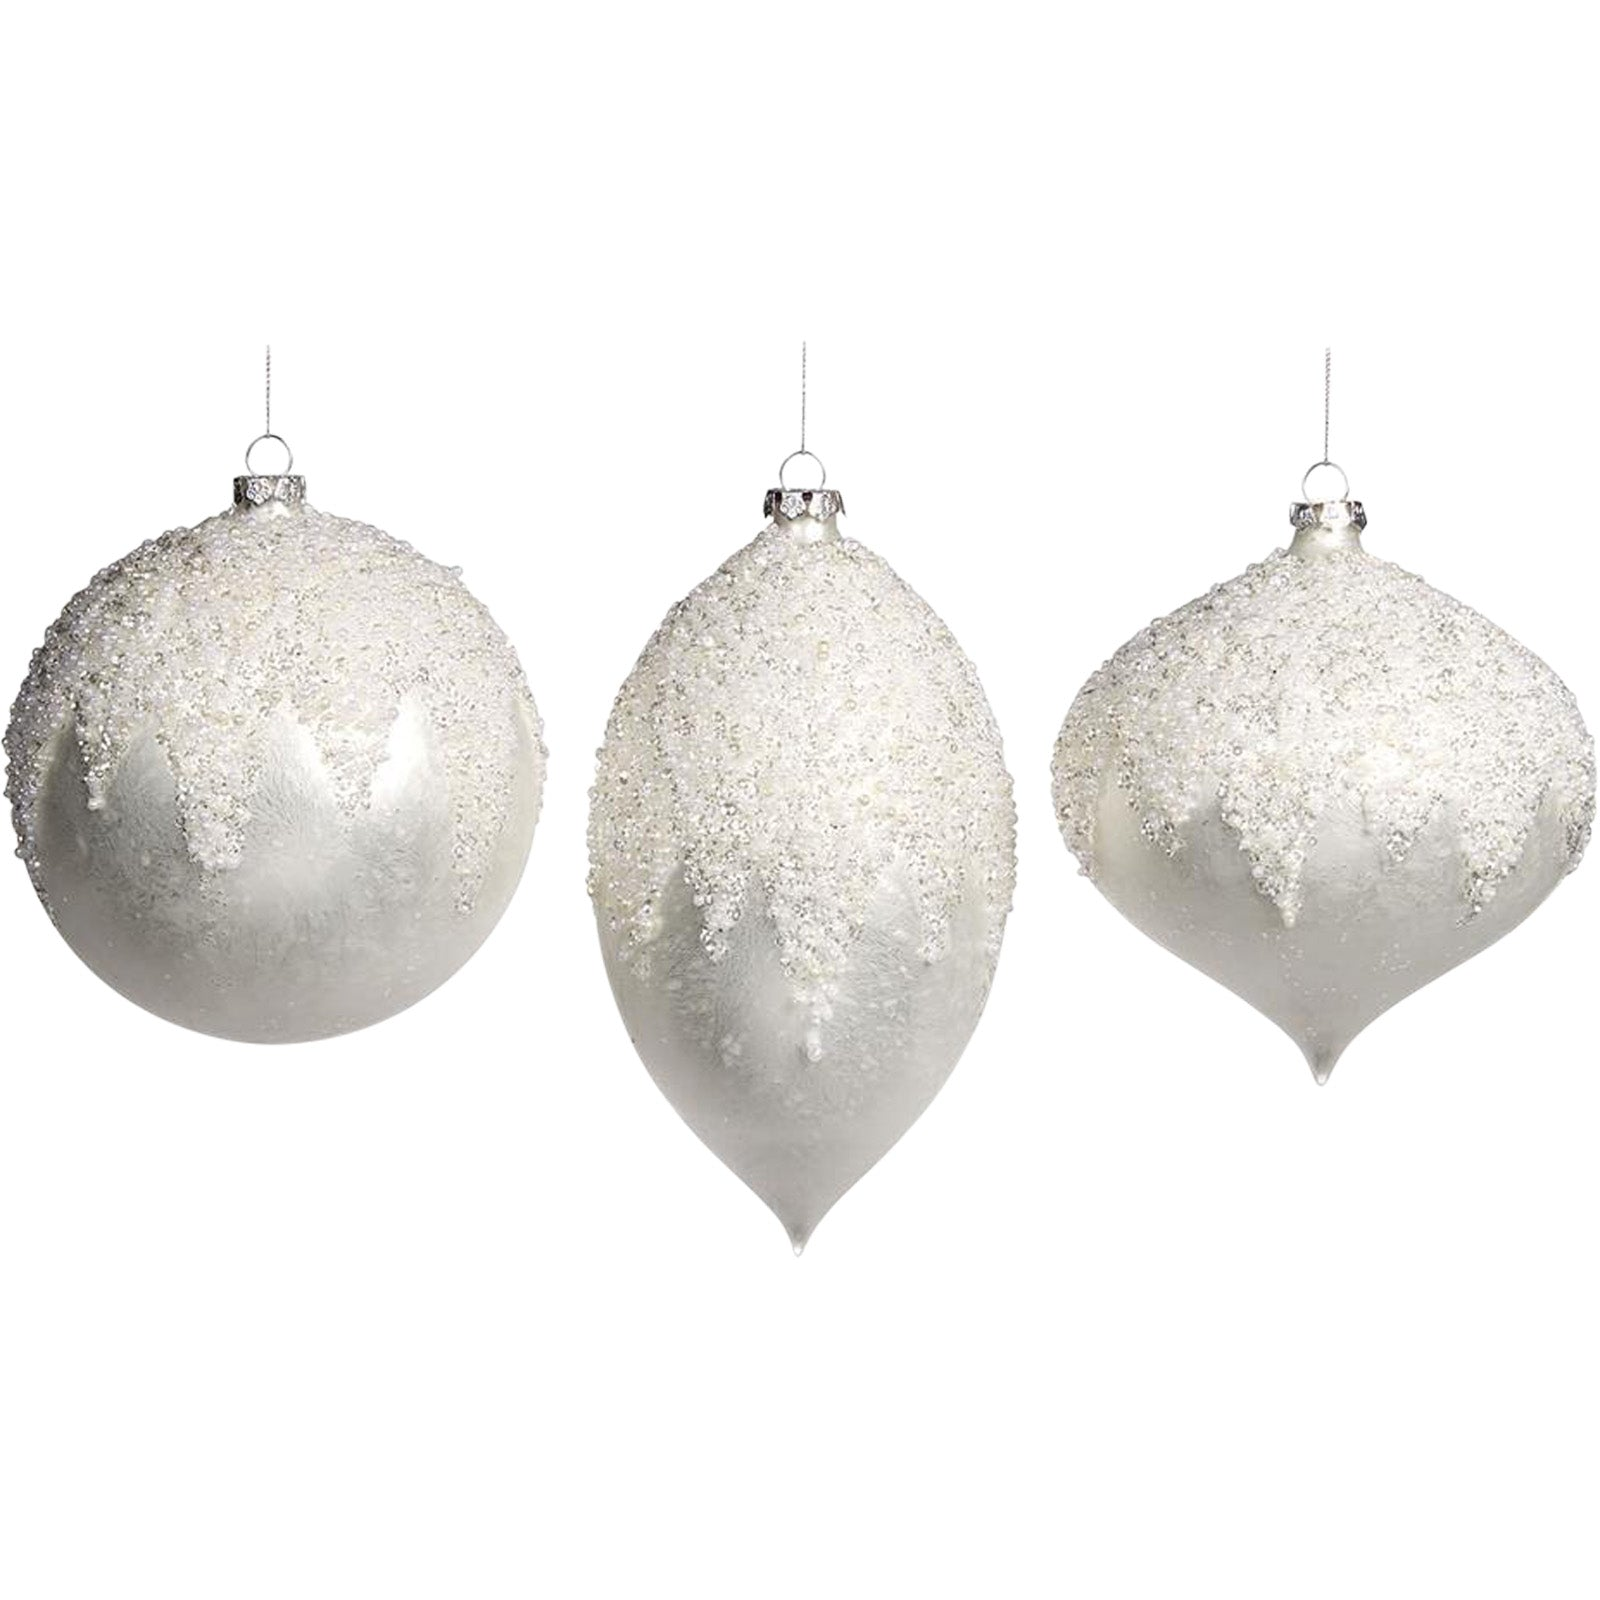 Set of 3 Glitter Top Baubles